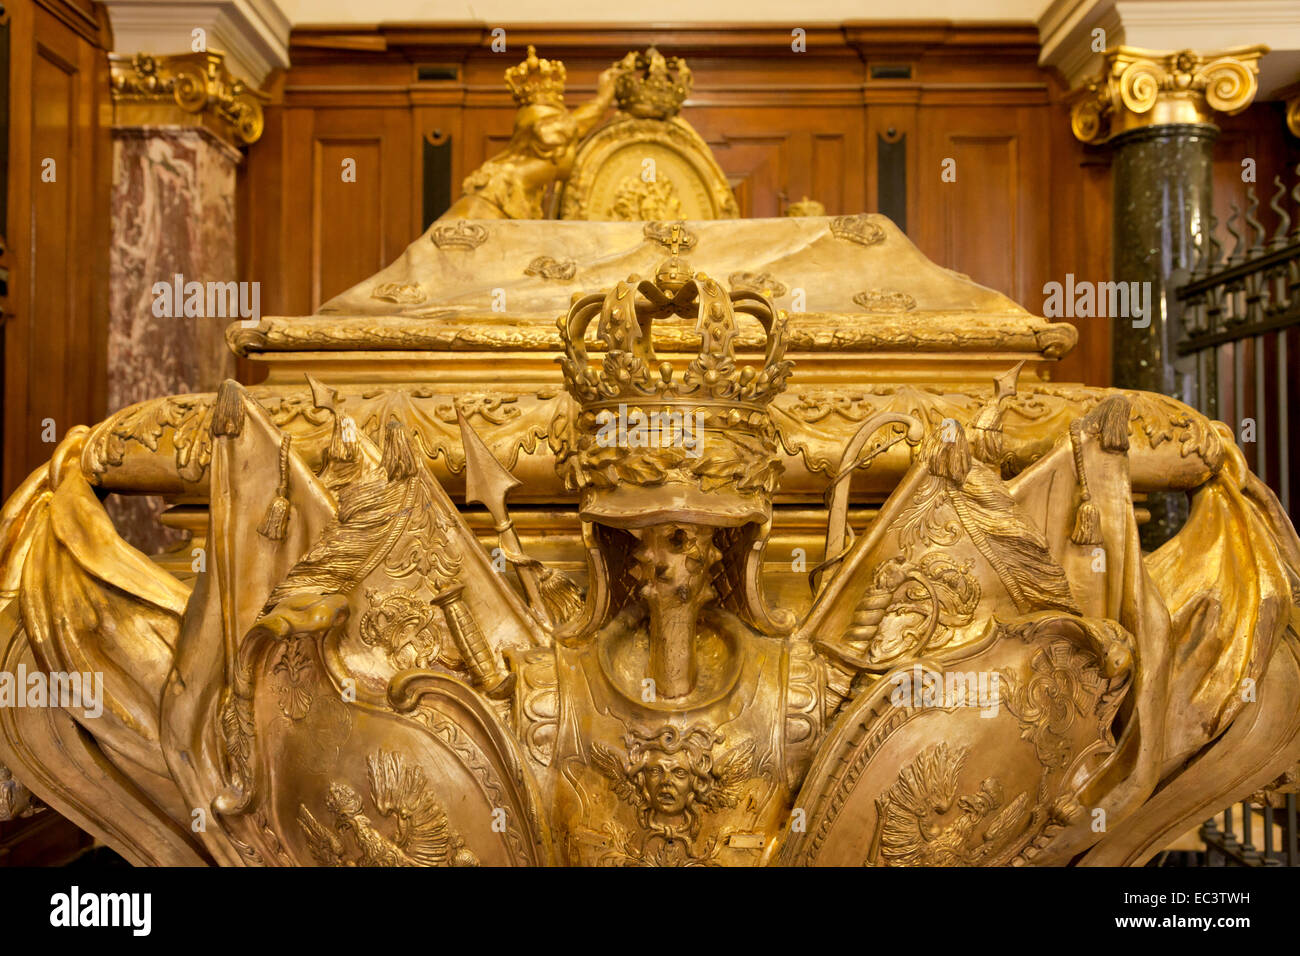 sarcophagus of the hohenzoller family in the hohenzollern gruft stock photo royalty free image. Black Bedroom Furniture Sets. Home Design Ideas